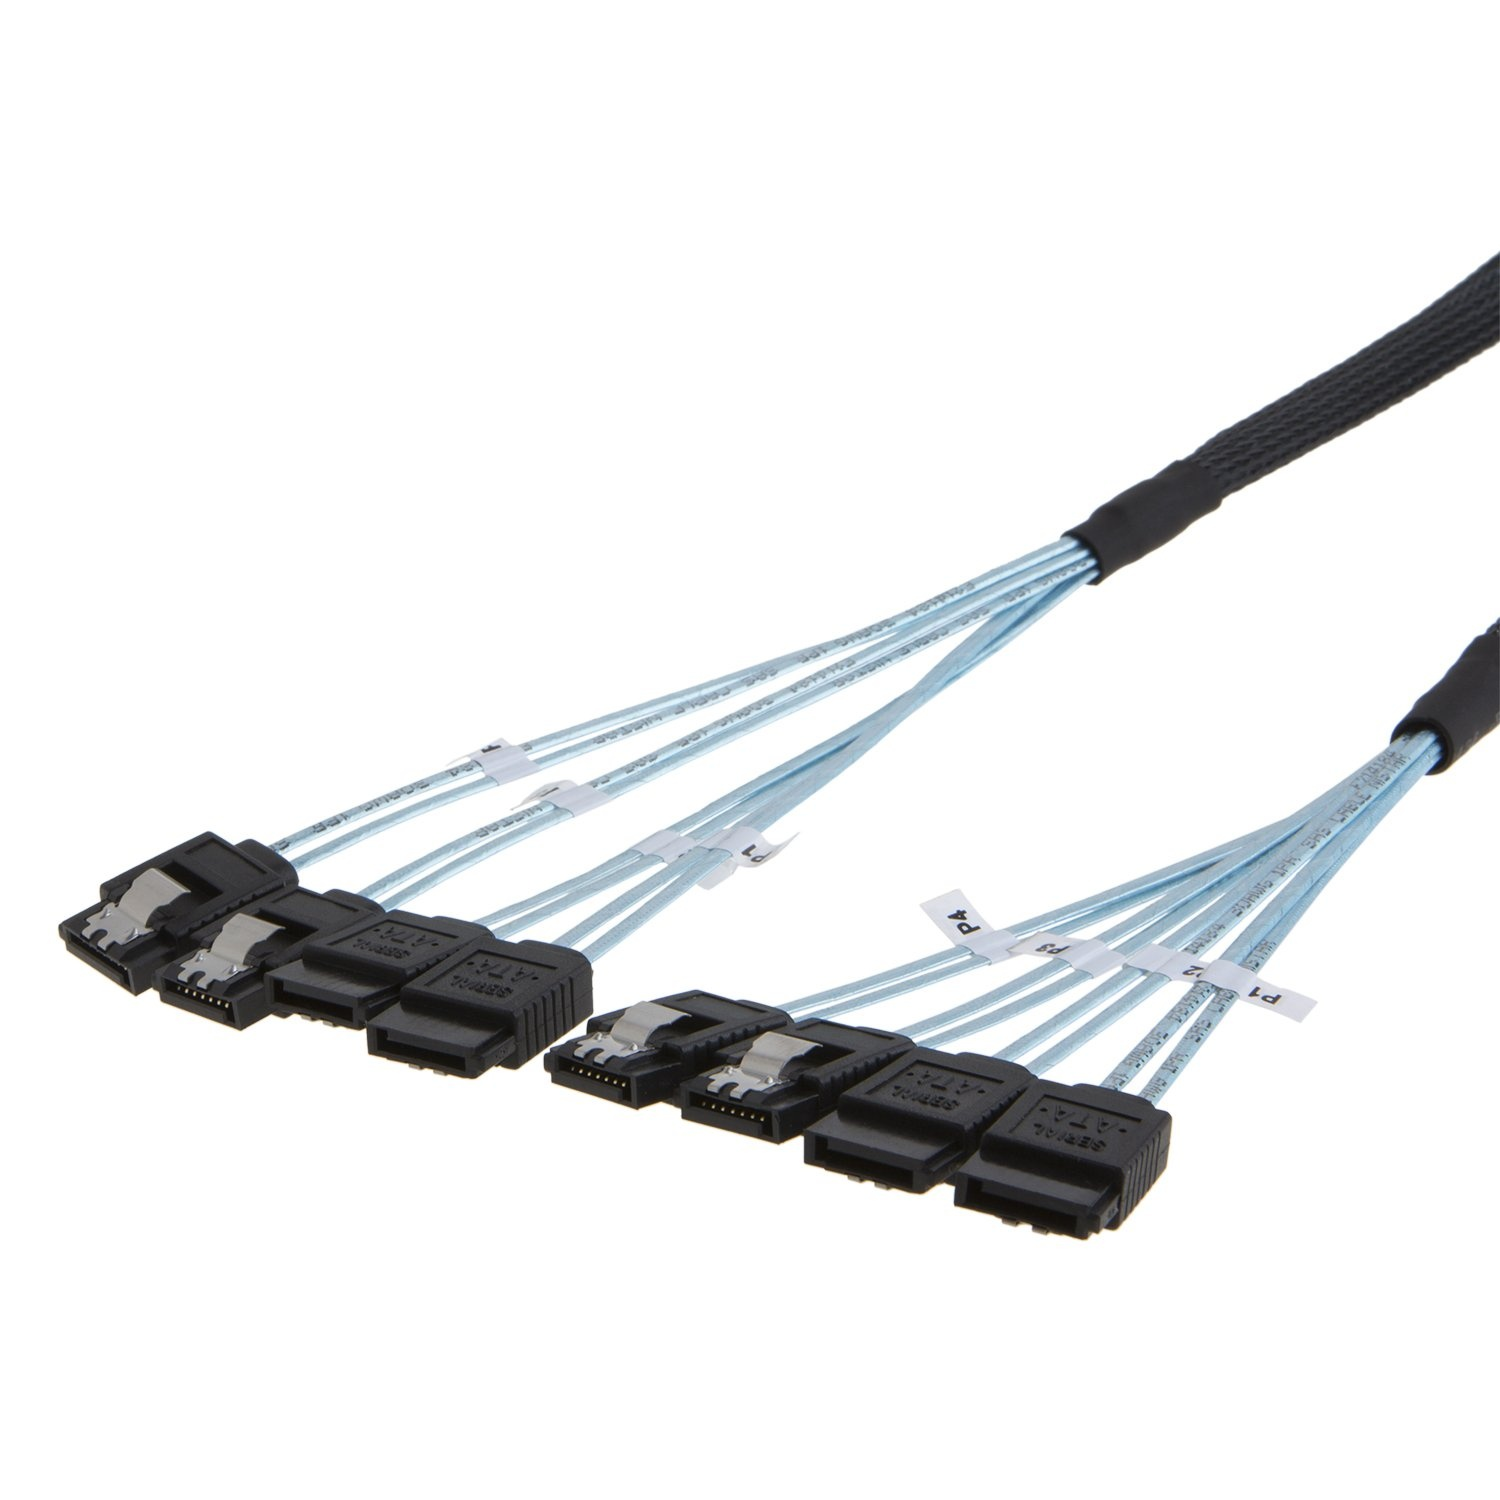 Wholesale Price China Internal Hd Mini Sas Cable - 4 SATA (7Pin) Female to 4 SATA (7Pin)  Female Cable 1.66 Feet/0.5 Meter, #CS0055 – CableCreation